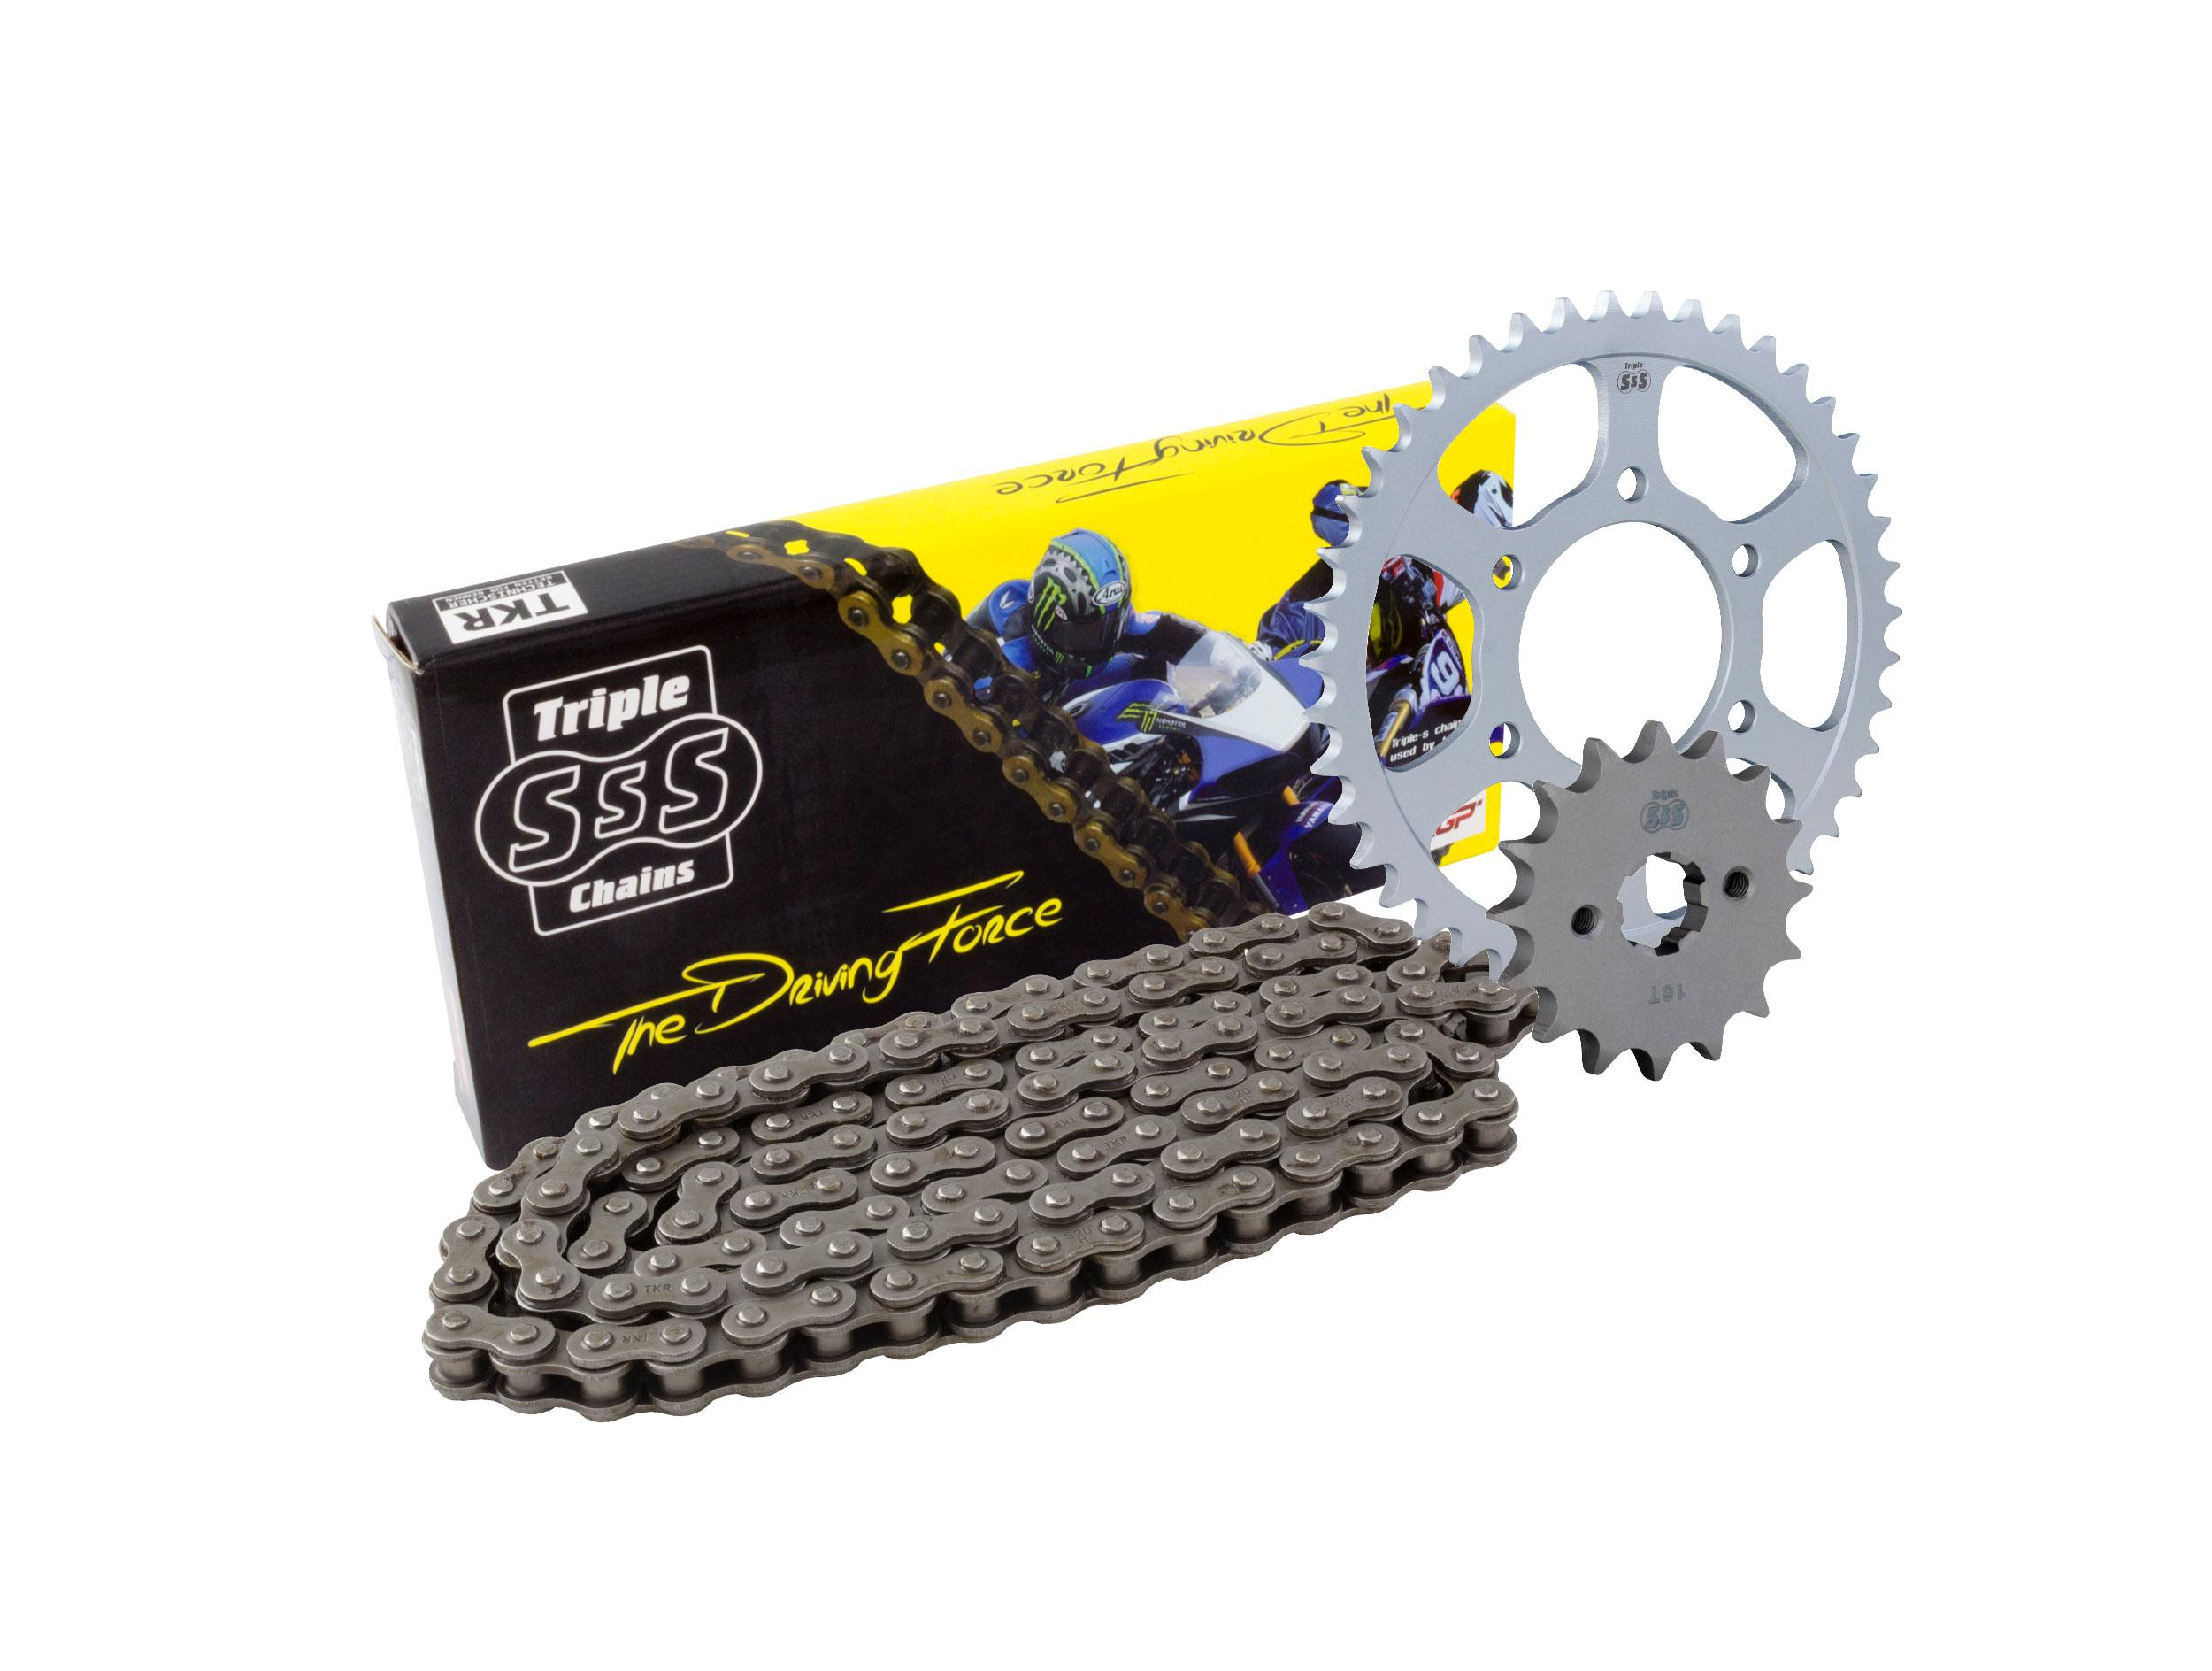 Yamaha WR250 R X/Y 08-10 Chain & Sprocket Kit: 13T Front, 43T Rear, HD Chain 520H 108 Link